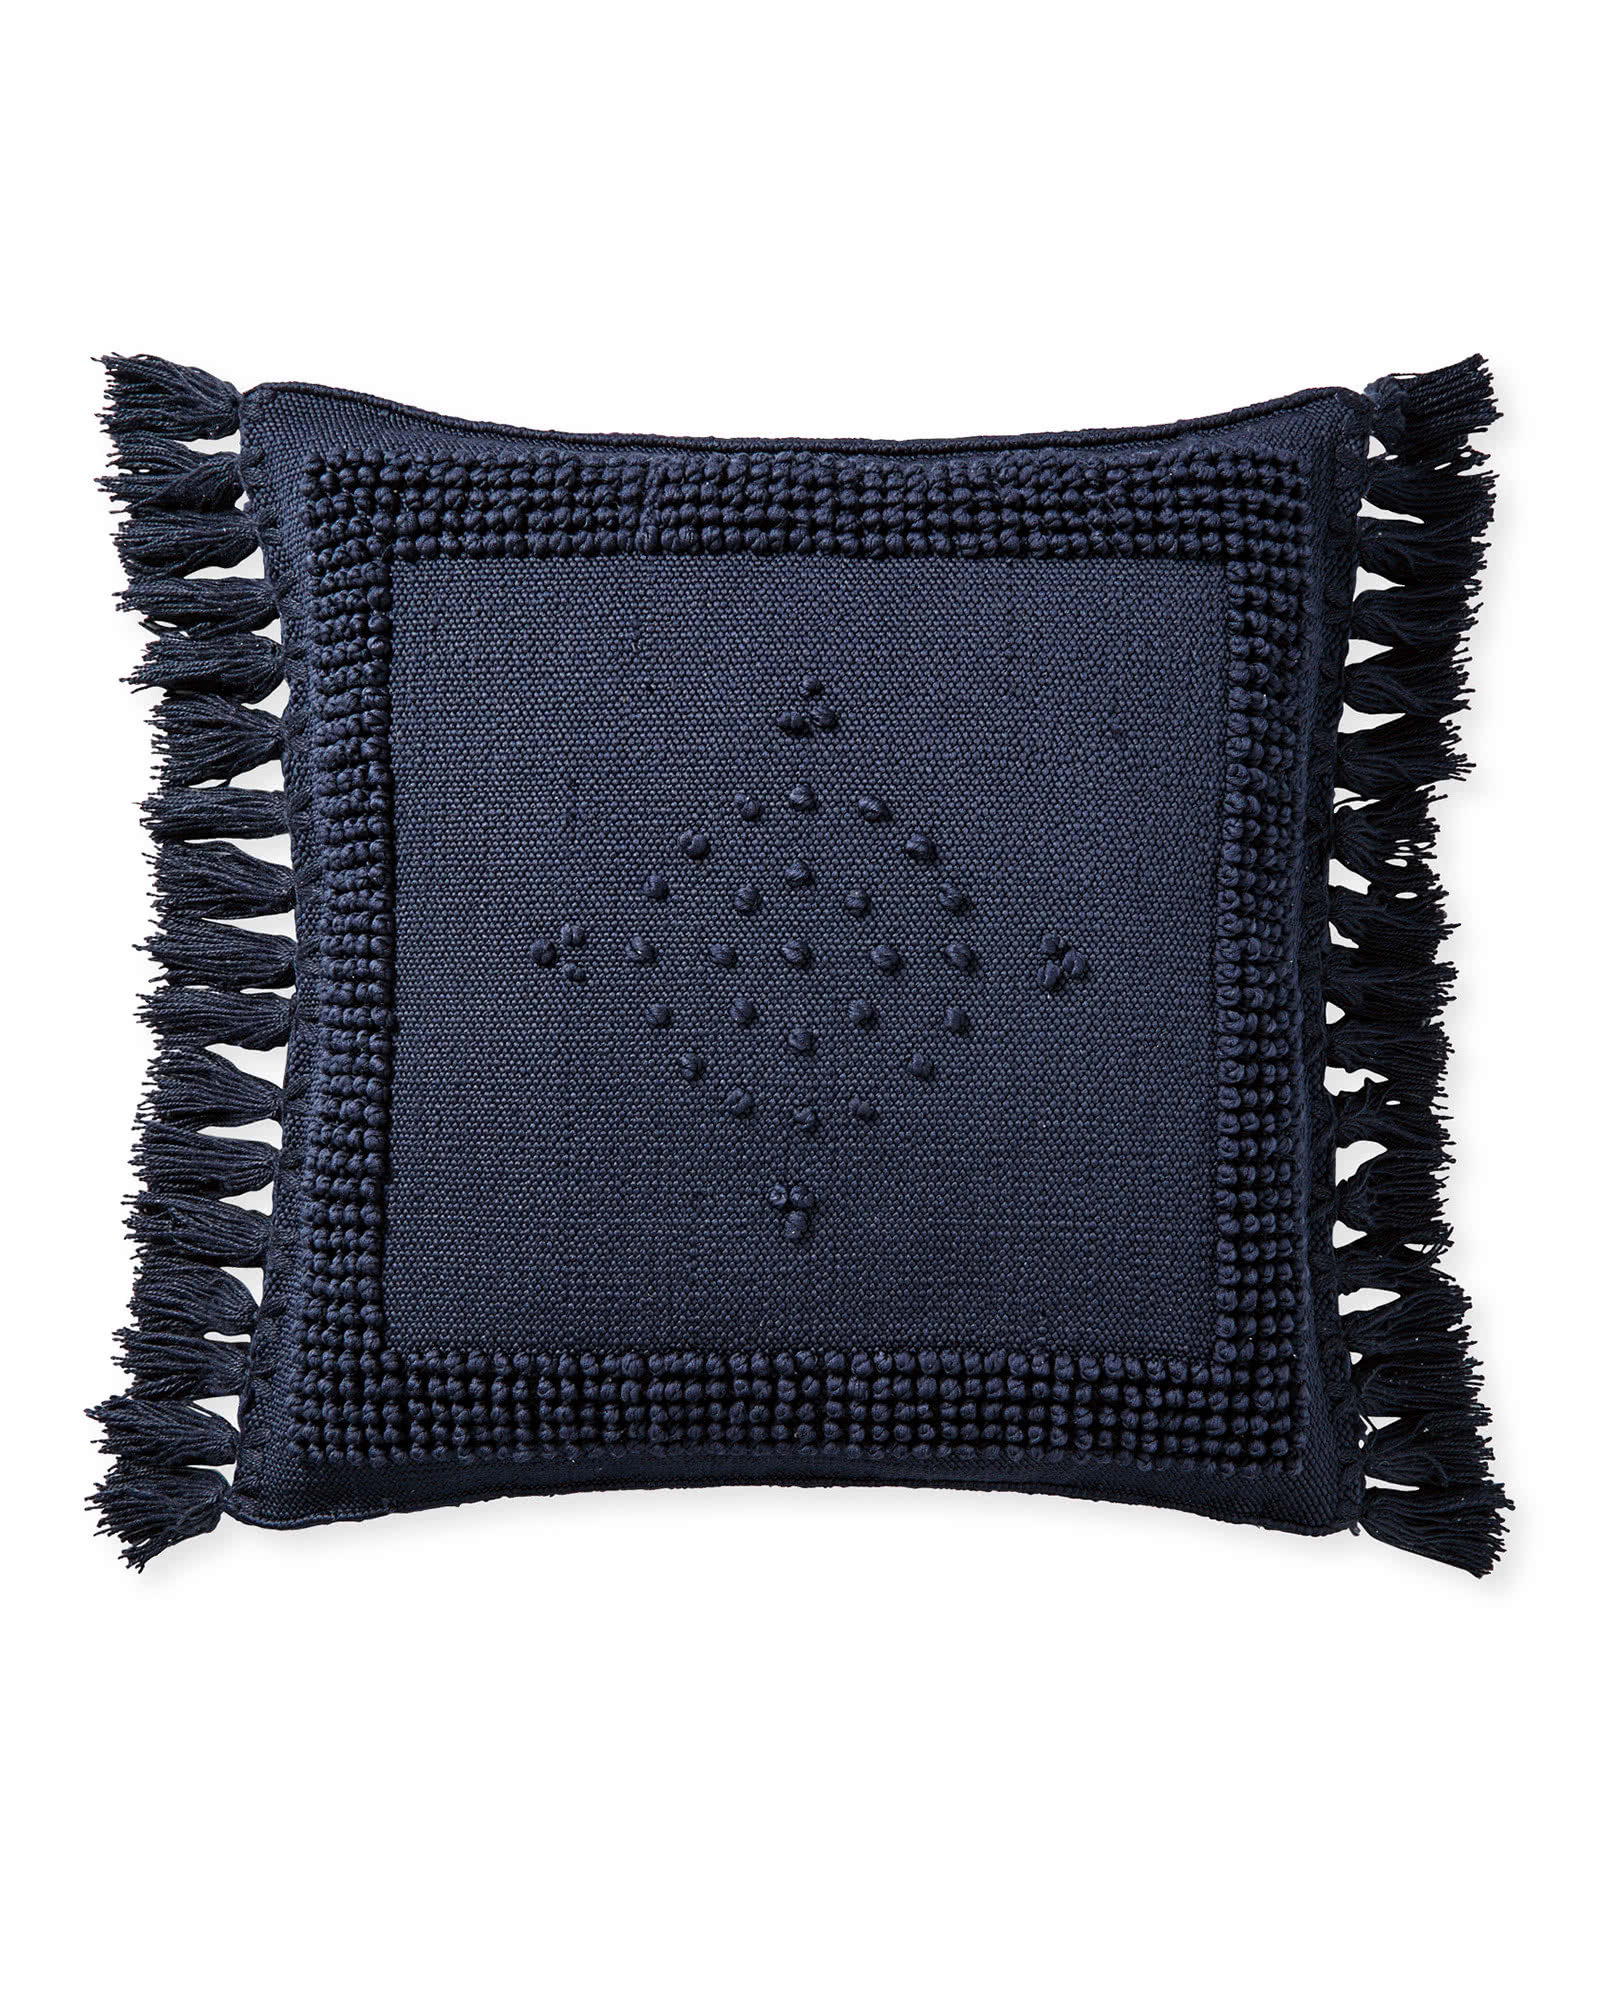 Montecito Pillow Cover, Navy